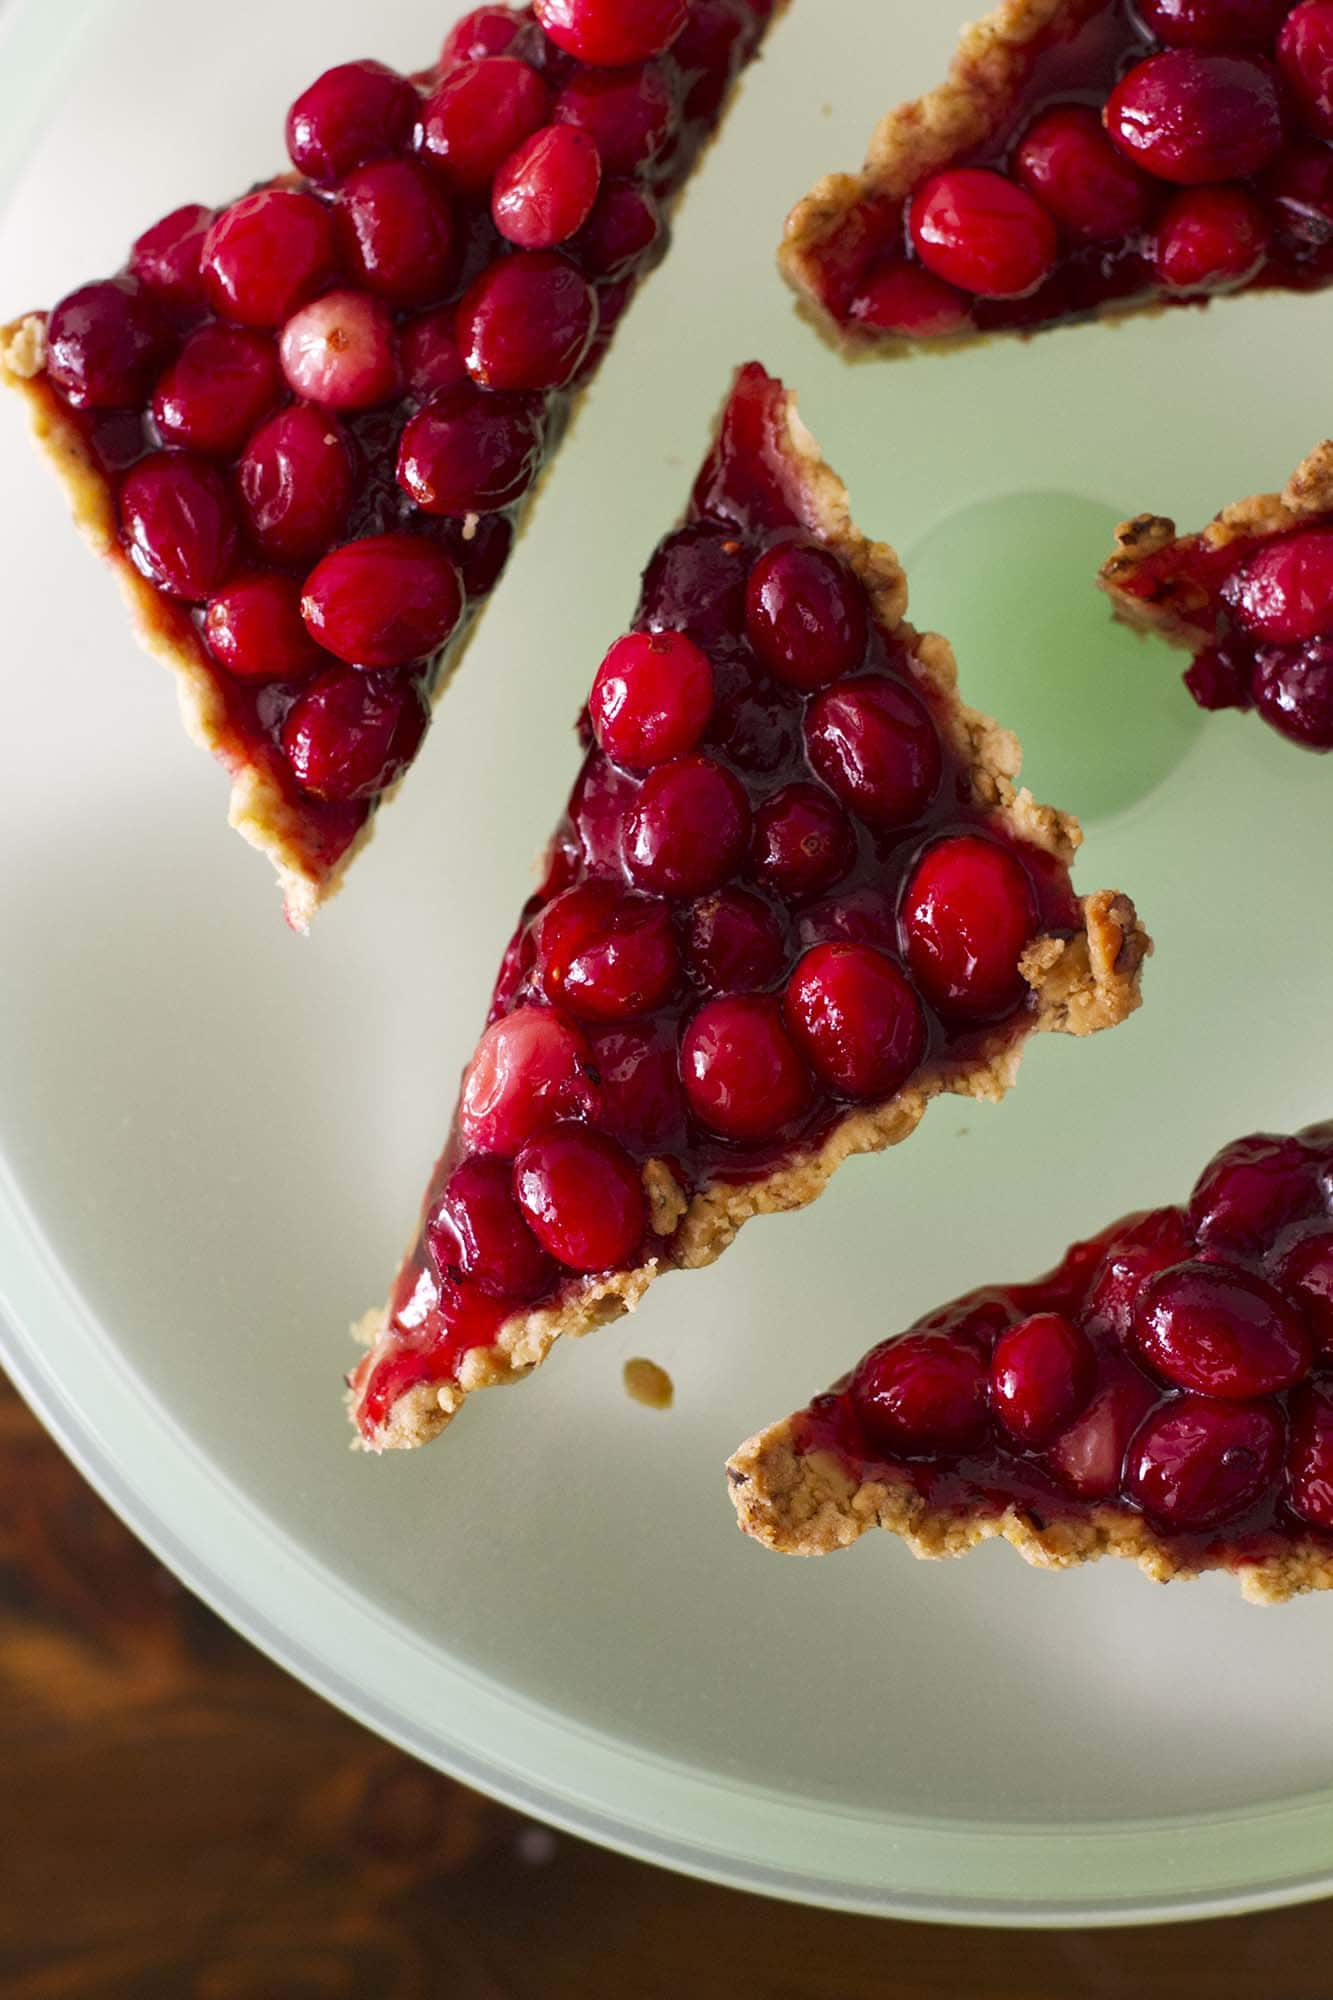 nut crusted cranberry tart slices on plate